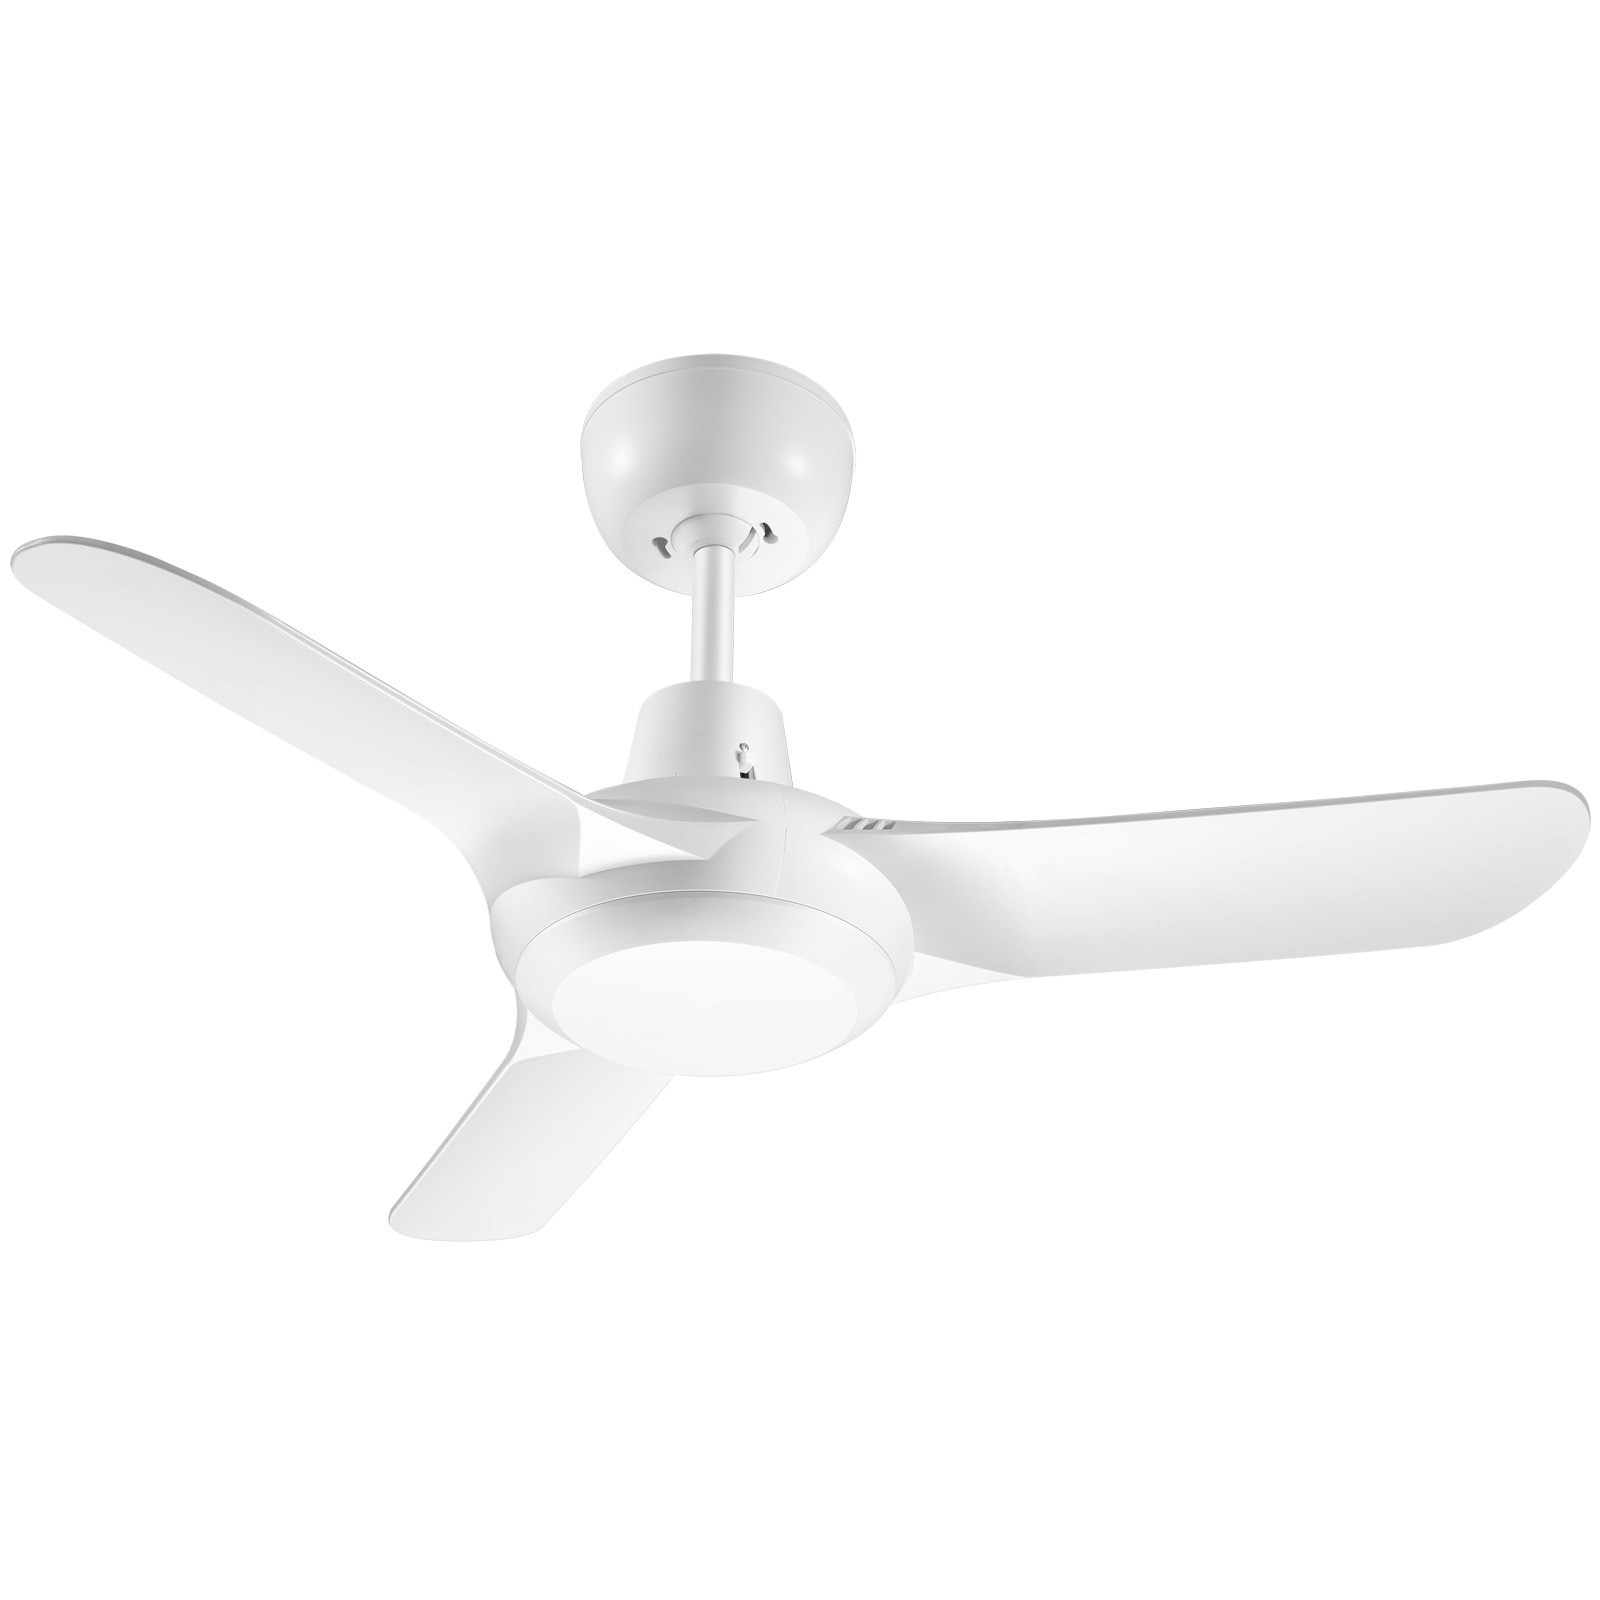 Ventair Spyda Commercial Grade Indoor / Outdoor 3 Blade Ceiling Fan, 90cm/36